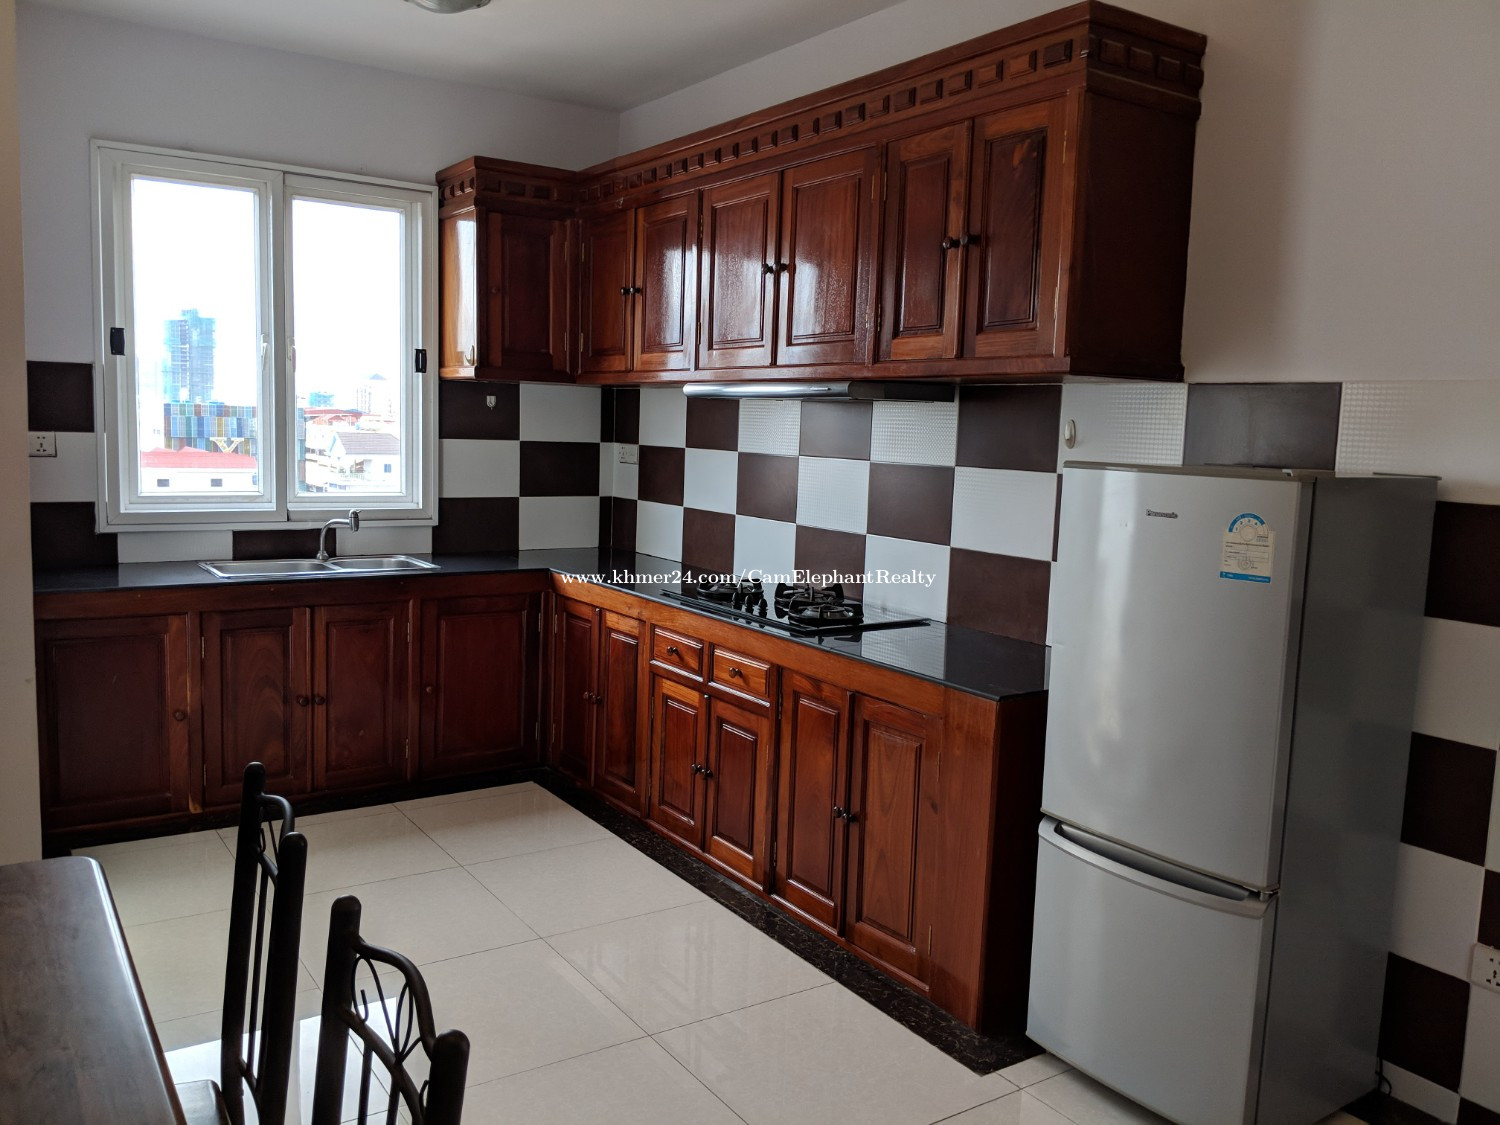 Gym Serviced Apartment 1Bedroom near Olympic, City Mall